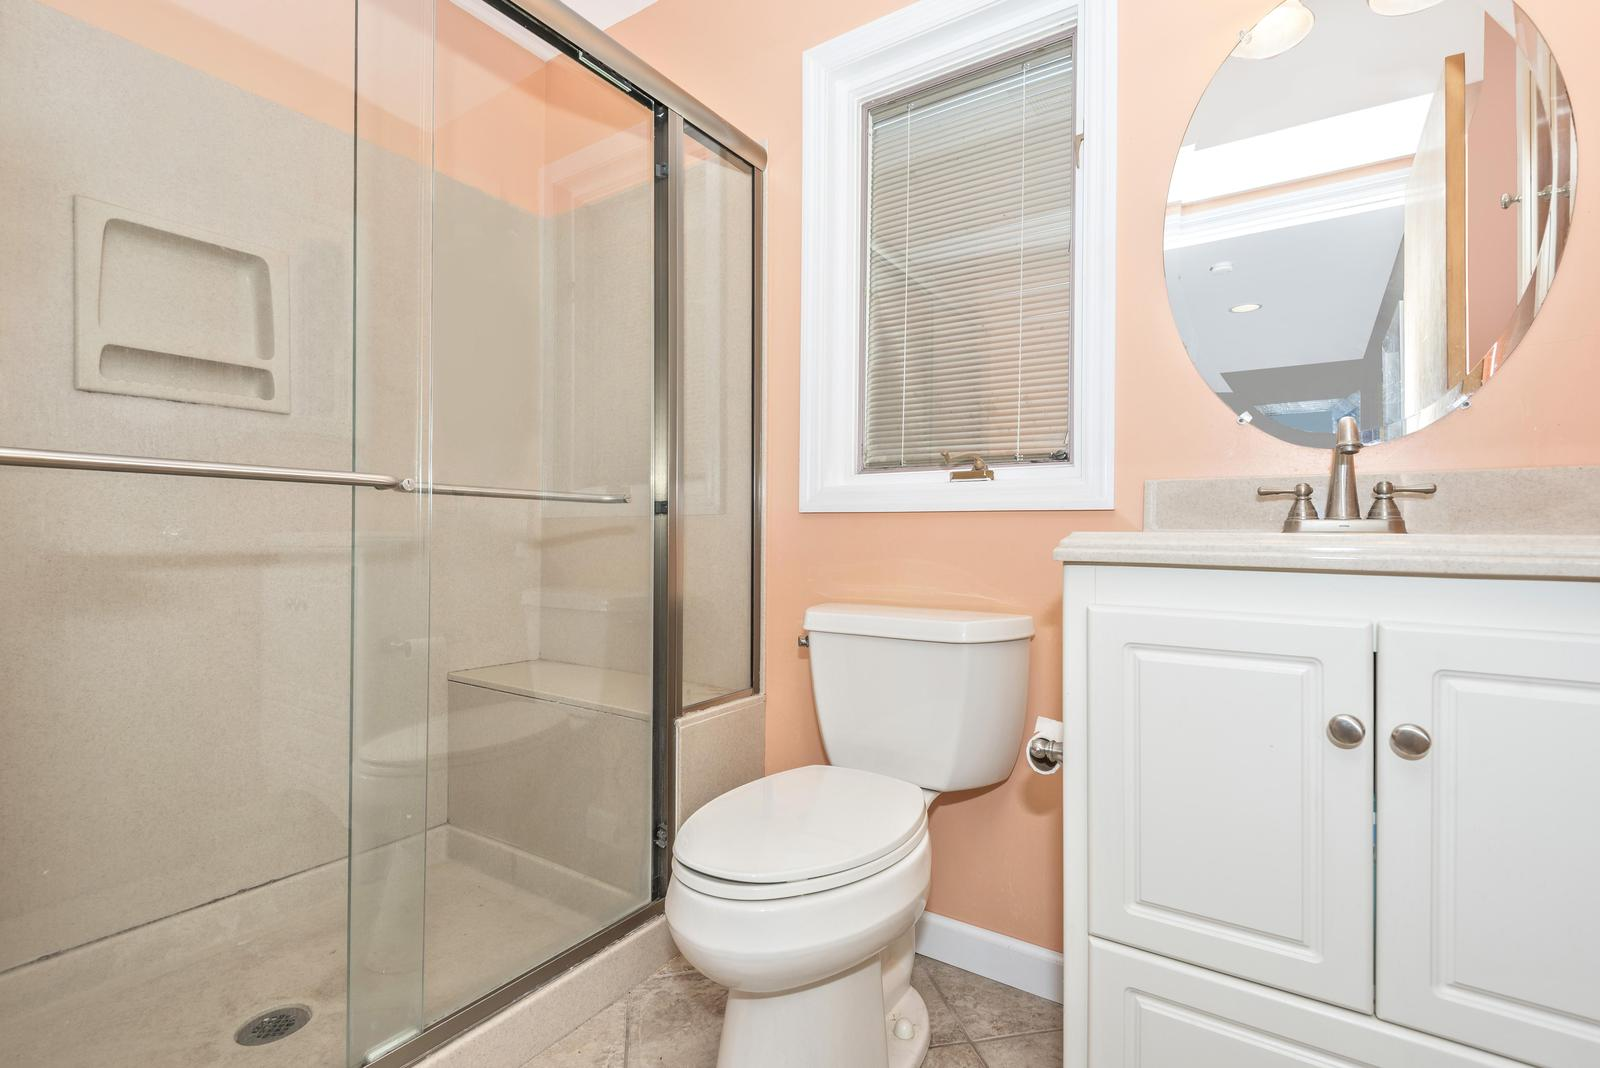 Downstairs bath with stand up shower.